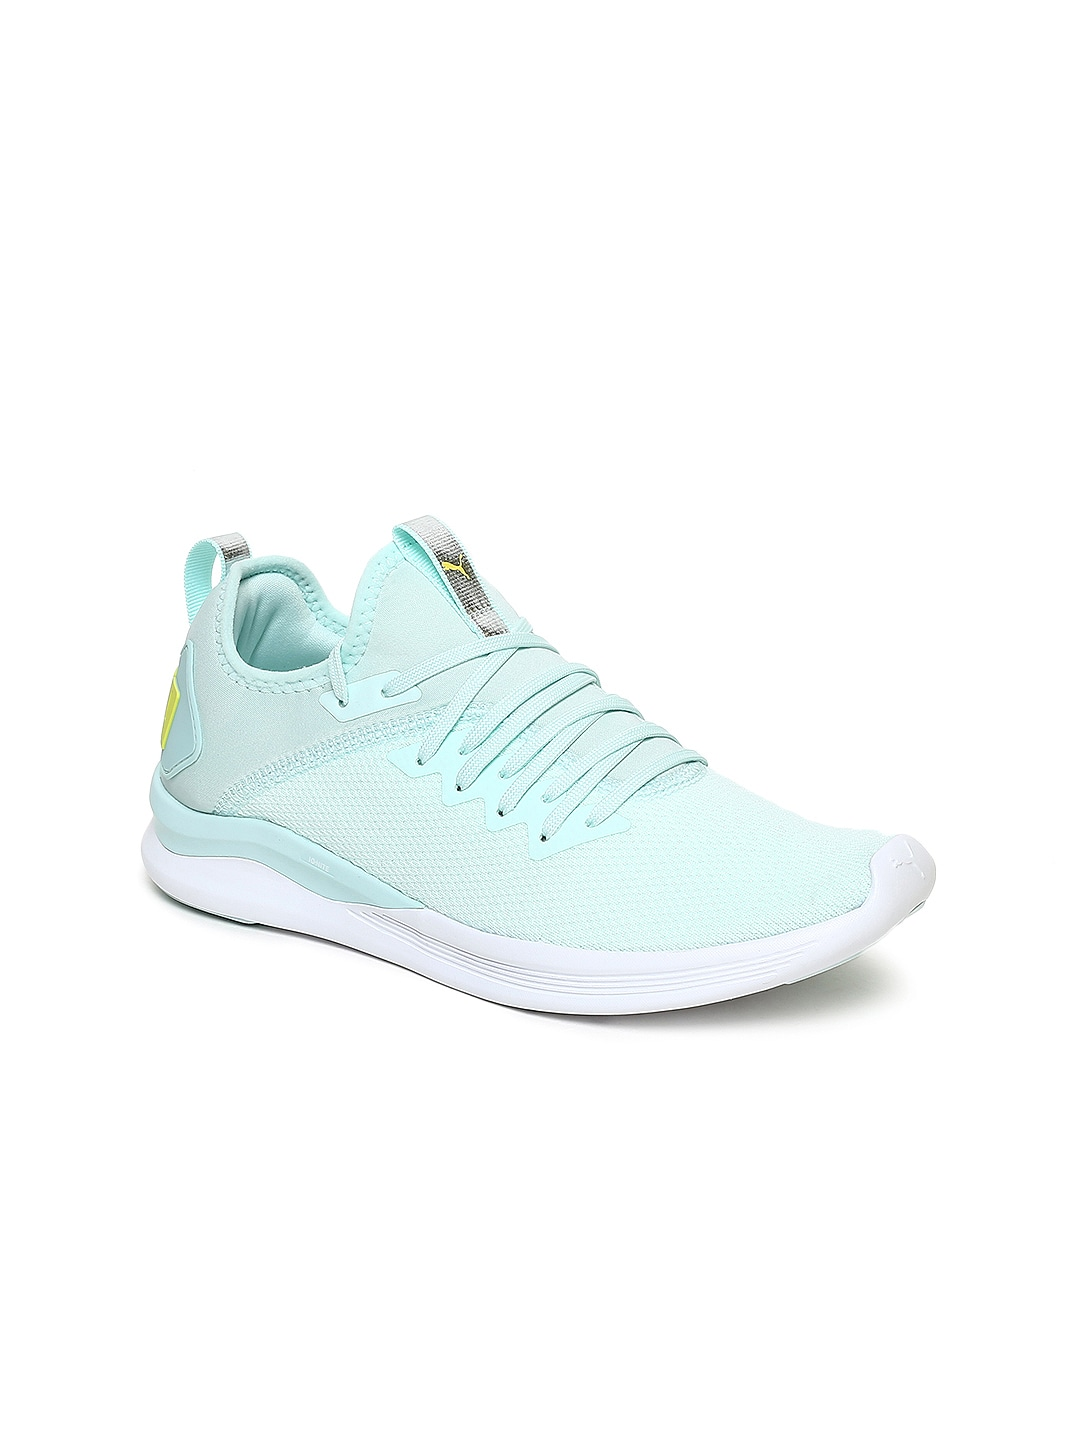 6e2894bfce1a Puma Shoes - Buy Puma Shoes for Men   Women Online in India